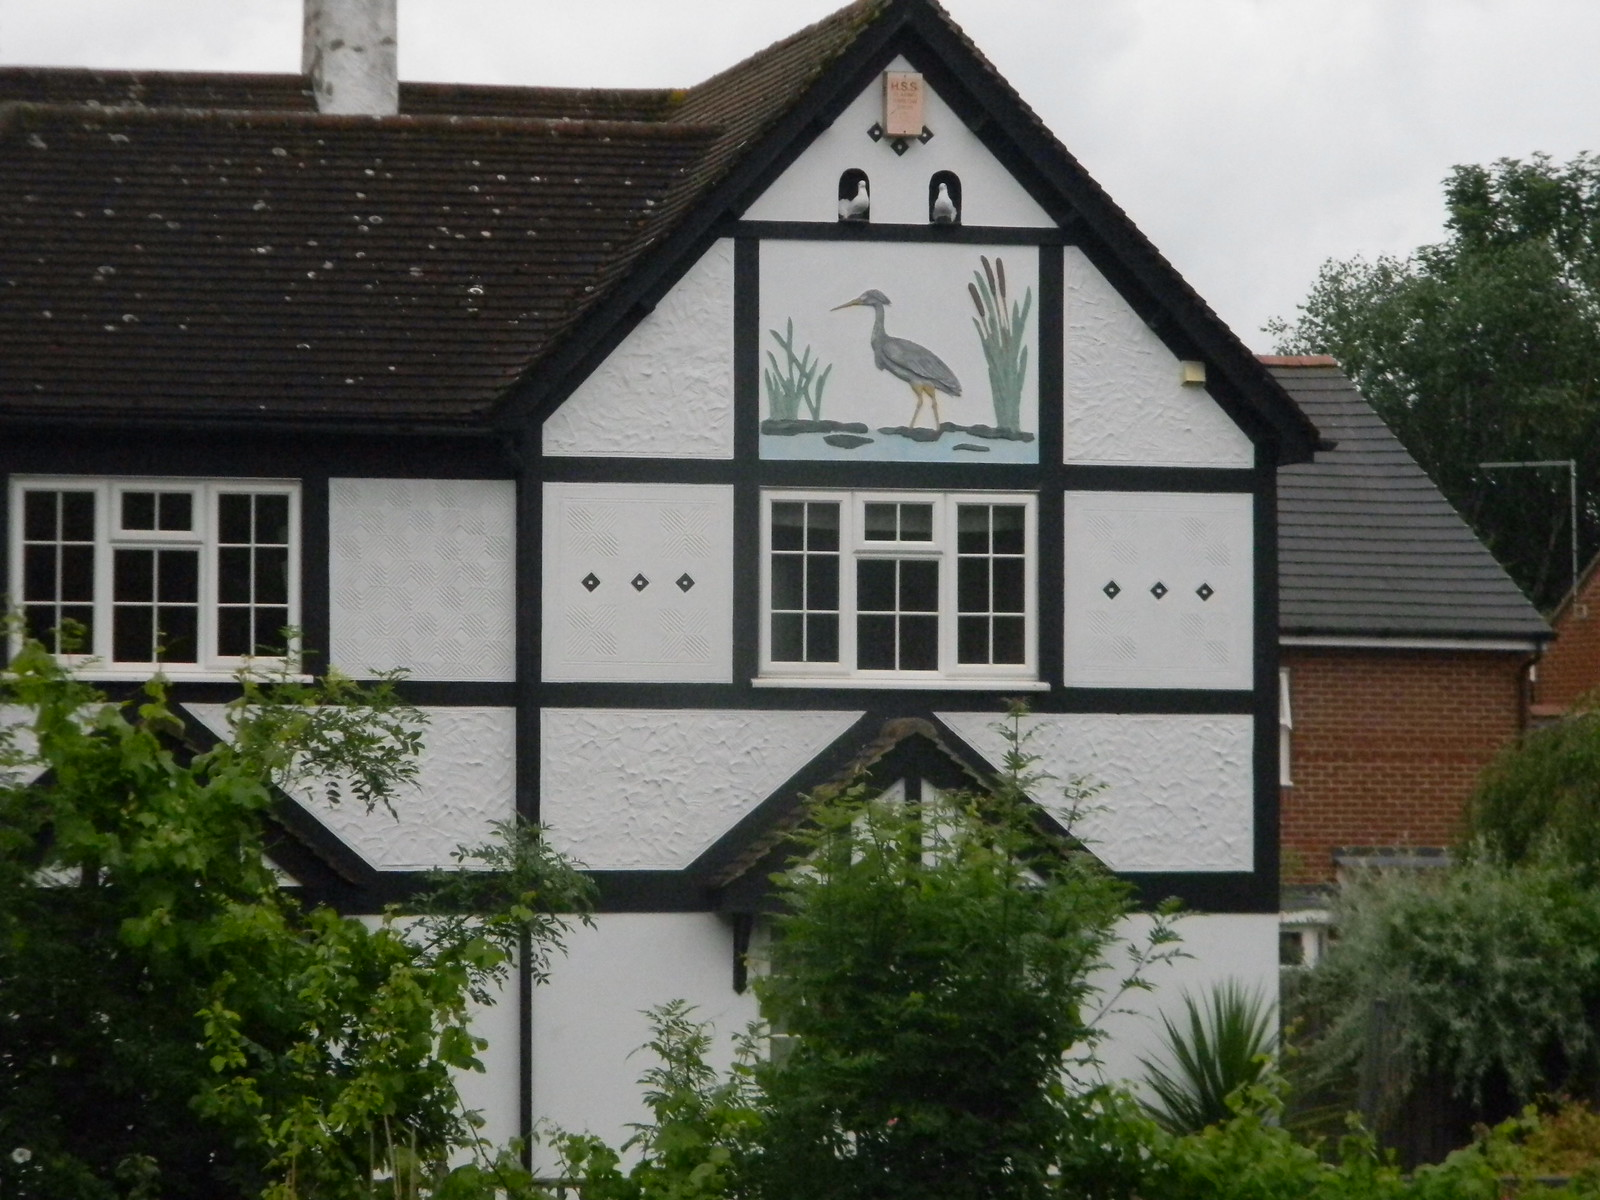 Heron and Doves Decorated house near Bishop Stortford. Sawbridgeworth to Bishop Stortford